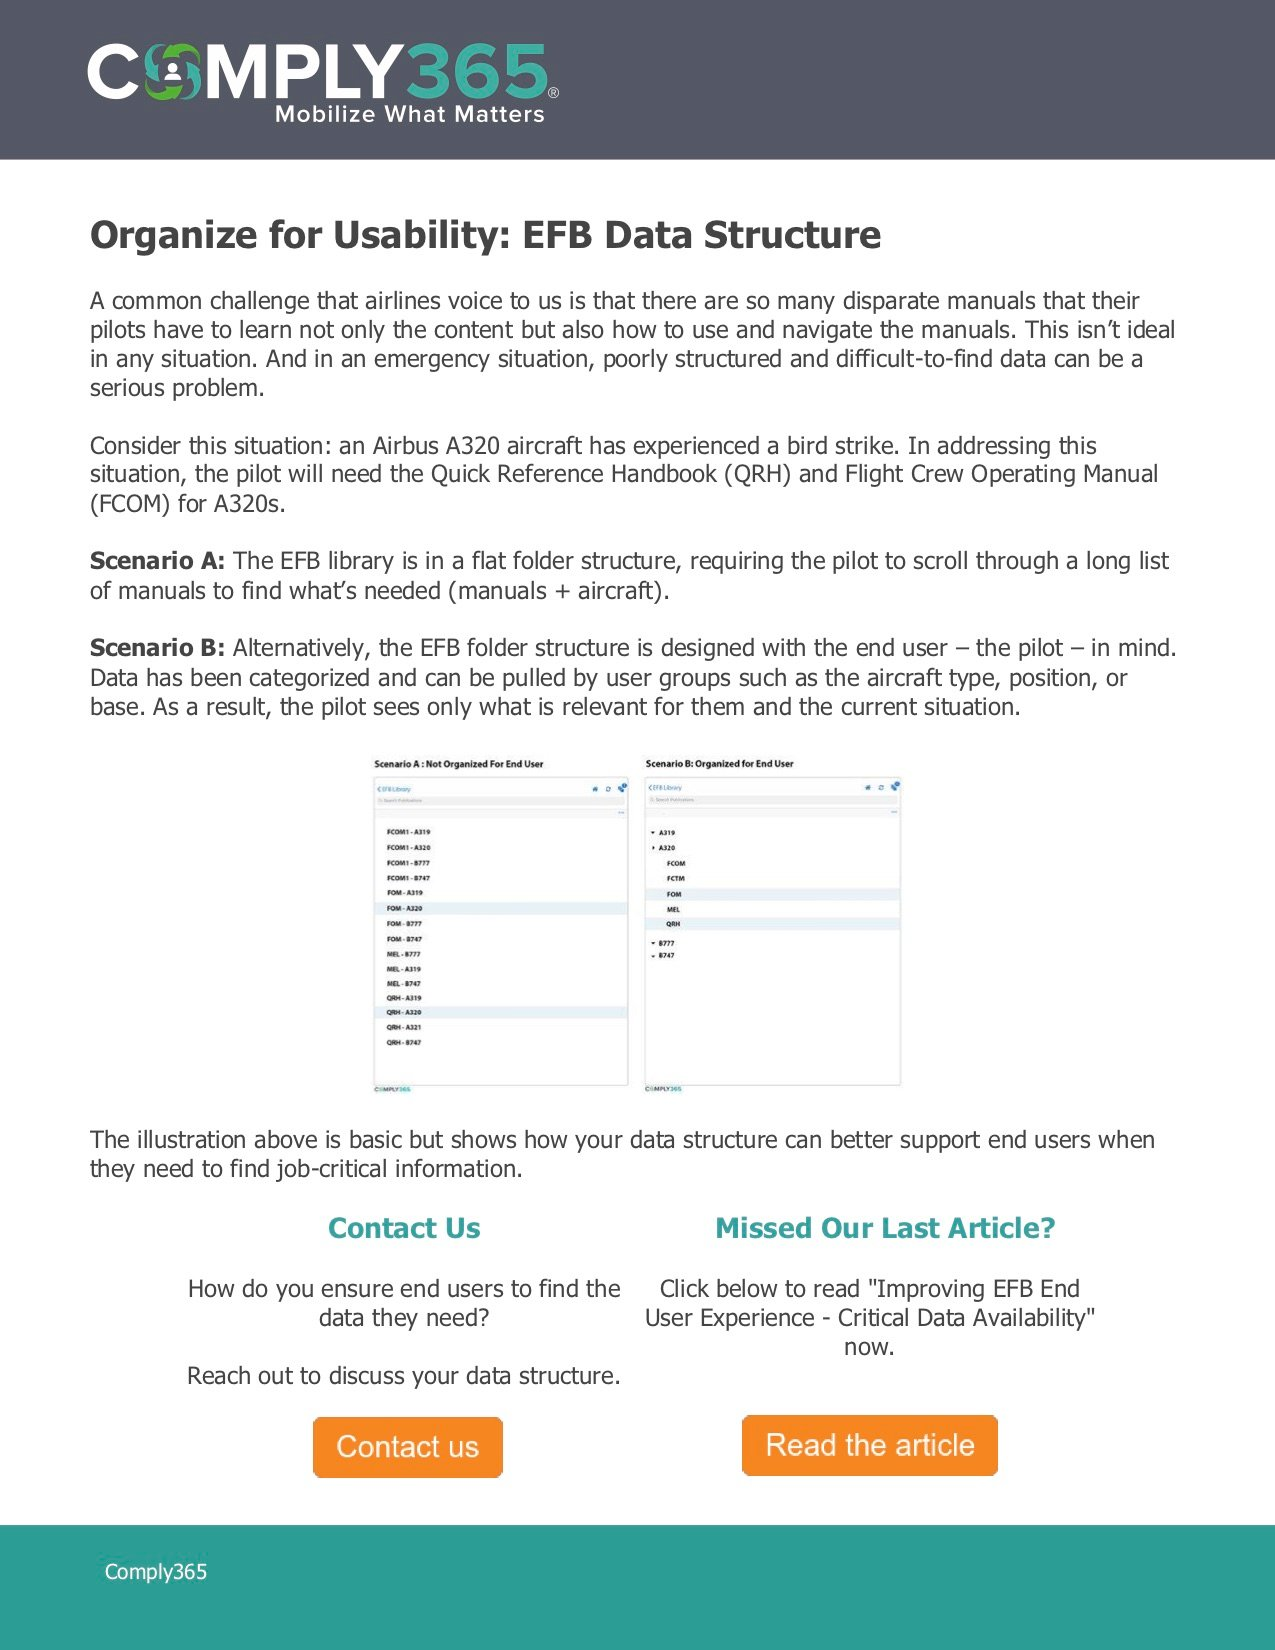 JPG - How to Structure EFB Data with the End User in Mind